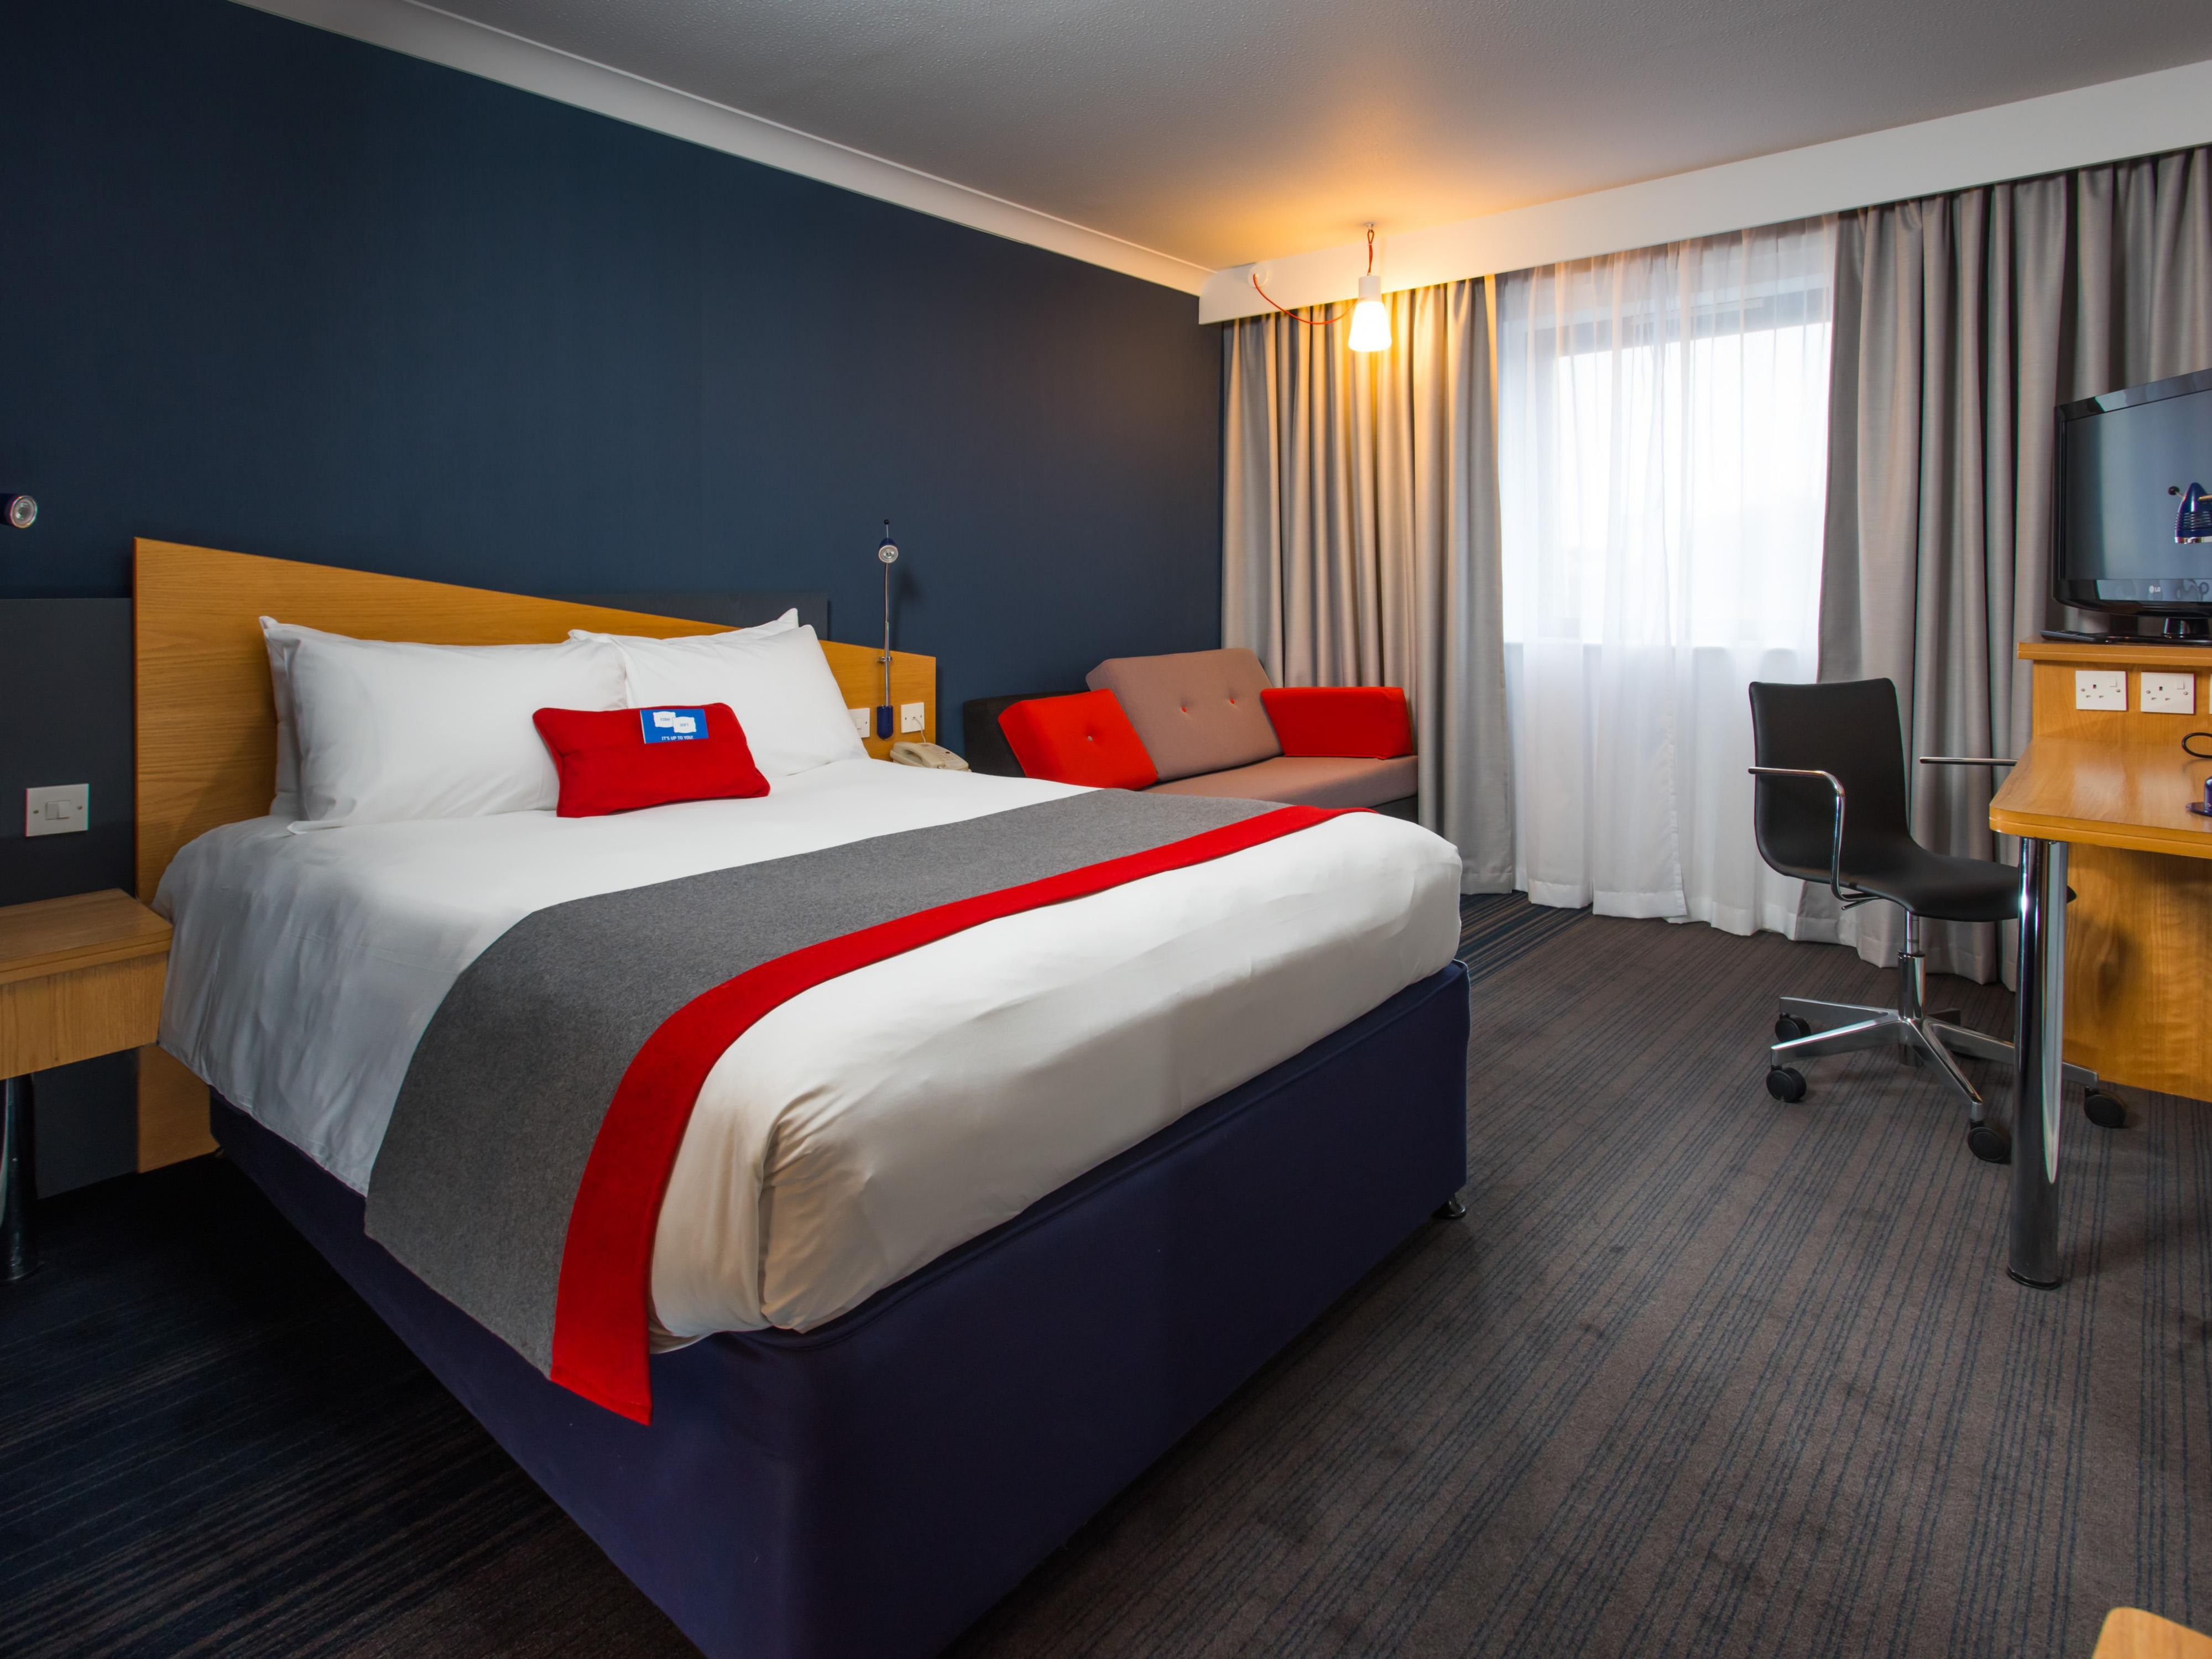 We love our revamped rooms! What do you think?